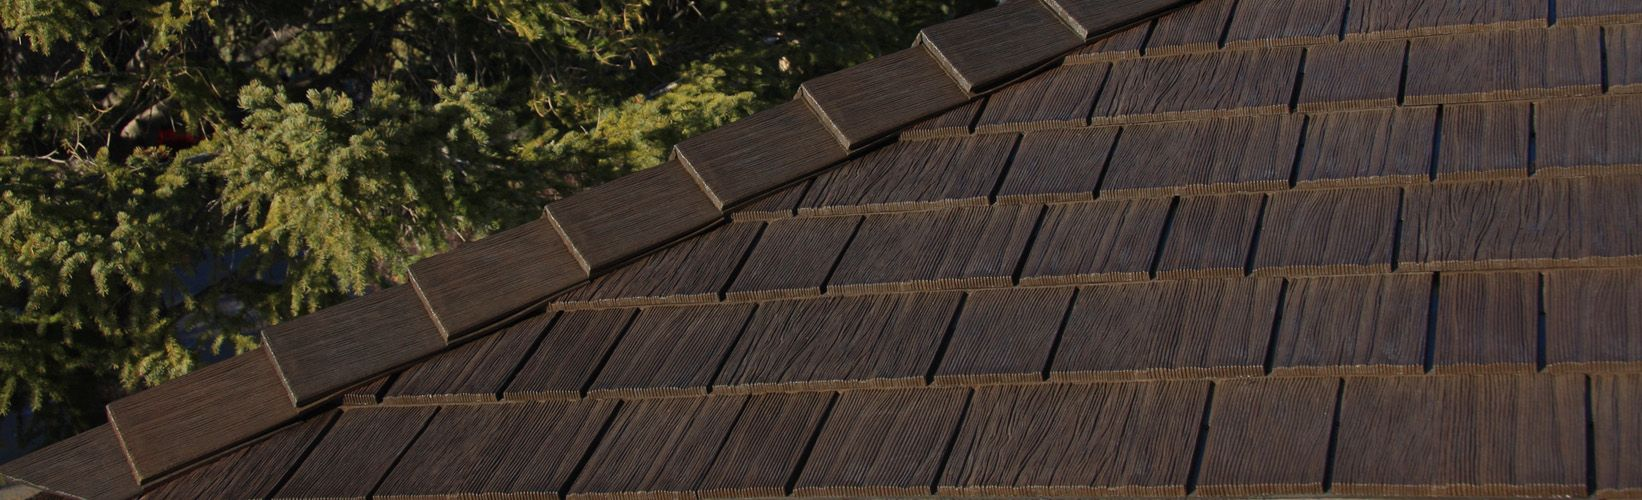 EuroLite Shake in Brown Rubber roofing, Roofing, Rubber